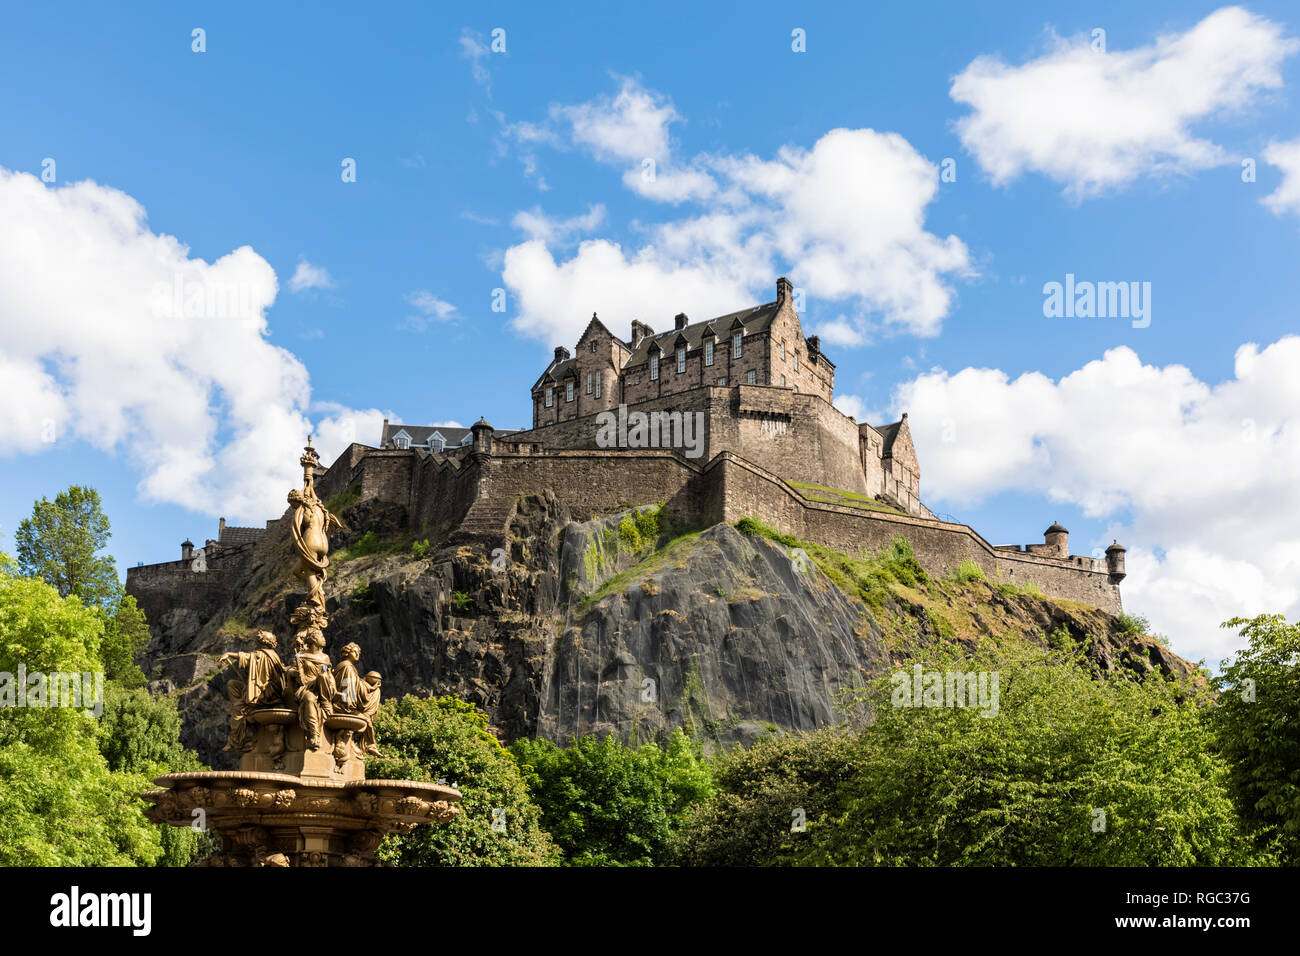 Great Britain, Scotland, Edinburgh, Castle Rock, Edinburgh Castle and Ross Fountain in Princes Street Gardens Park - Stock Image